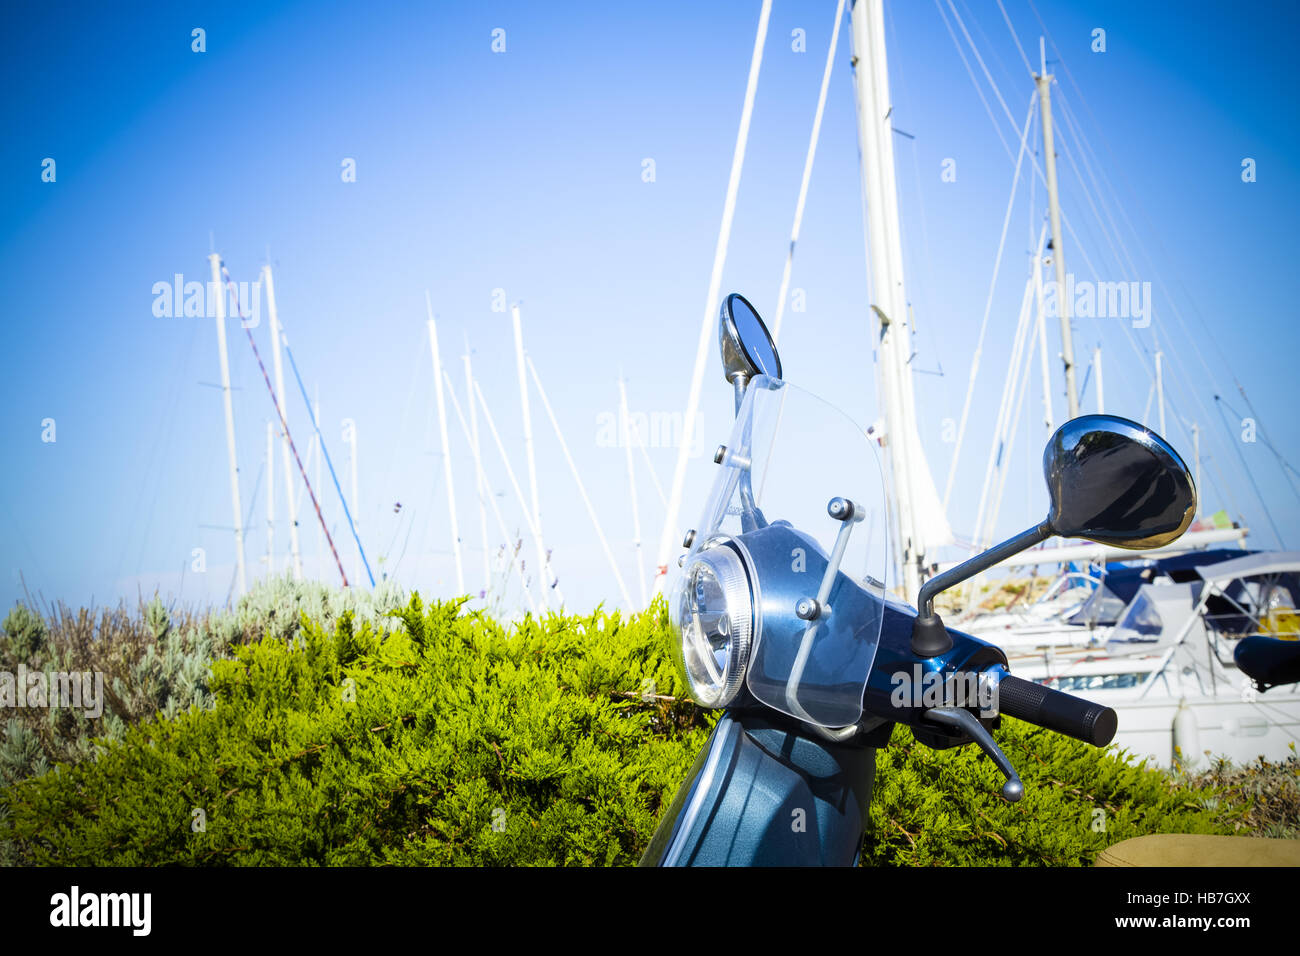 vintage scooter in the harbour with spars in background - Stock Image